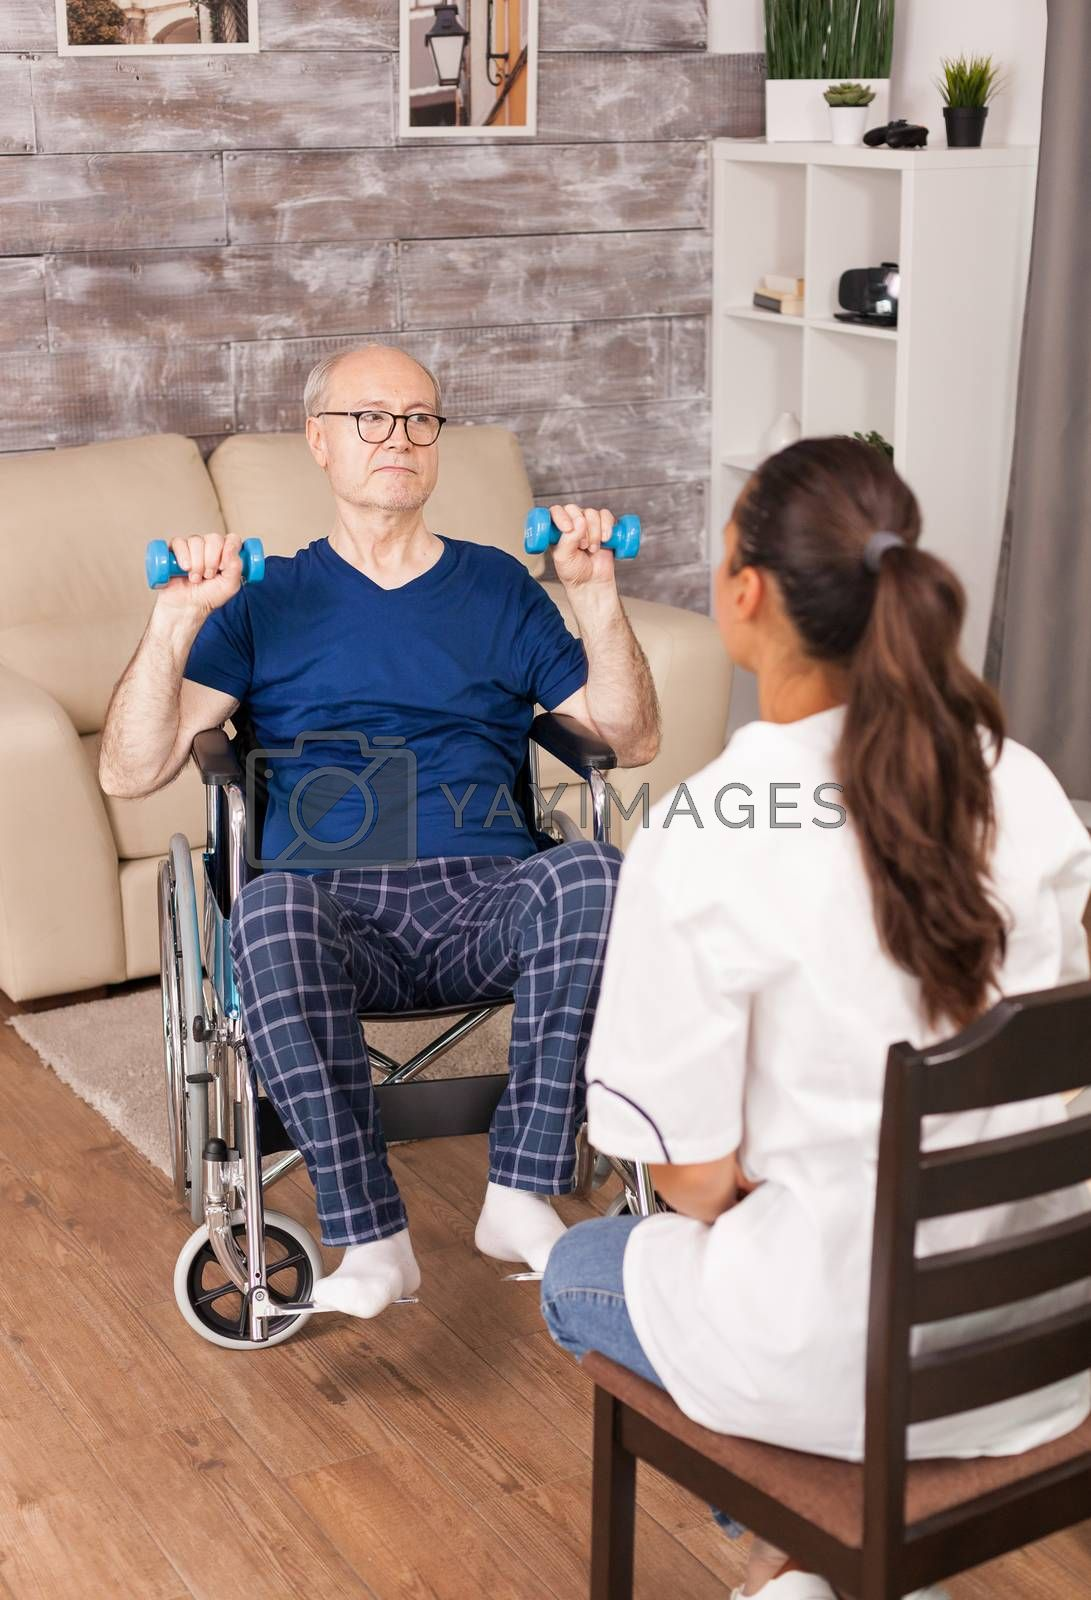 Medical worker explaining the exercises to old person in wheelchair. Disabled handicapped old person with social worker in recovery support therapy physiotherapy healthcare system nursing retirement home